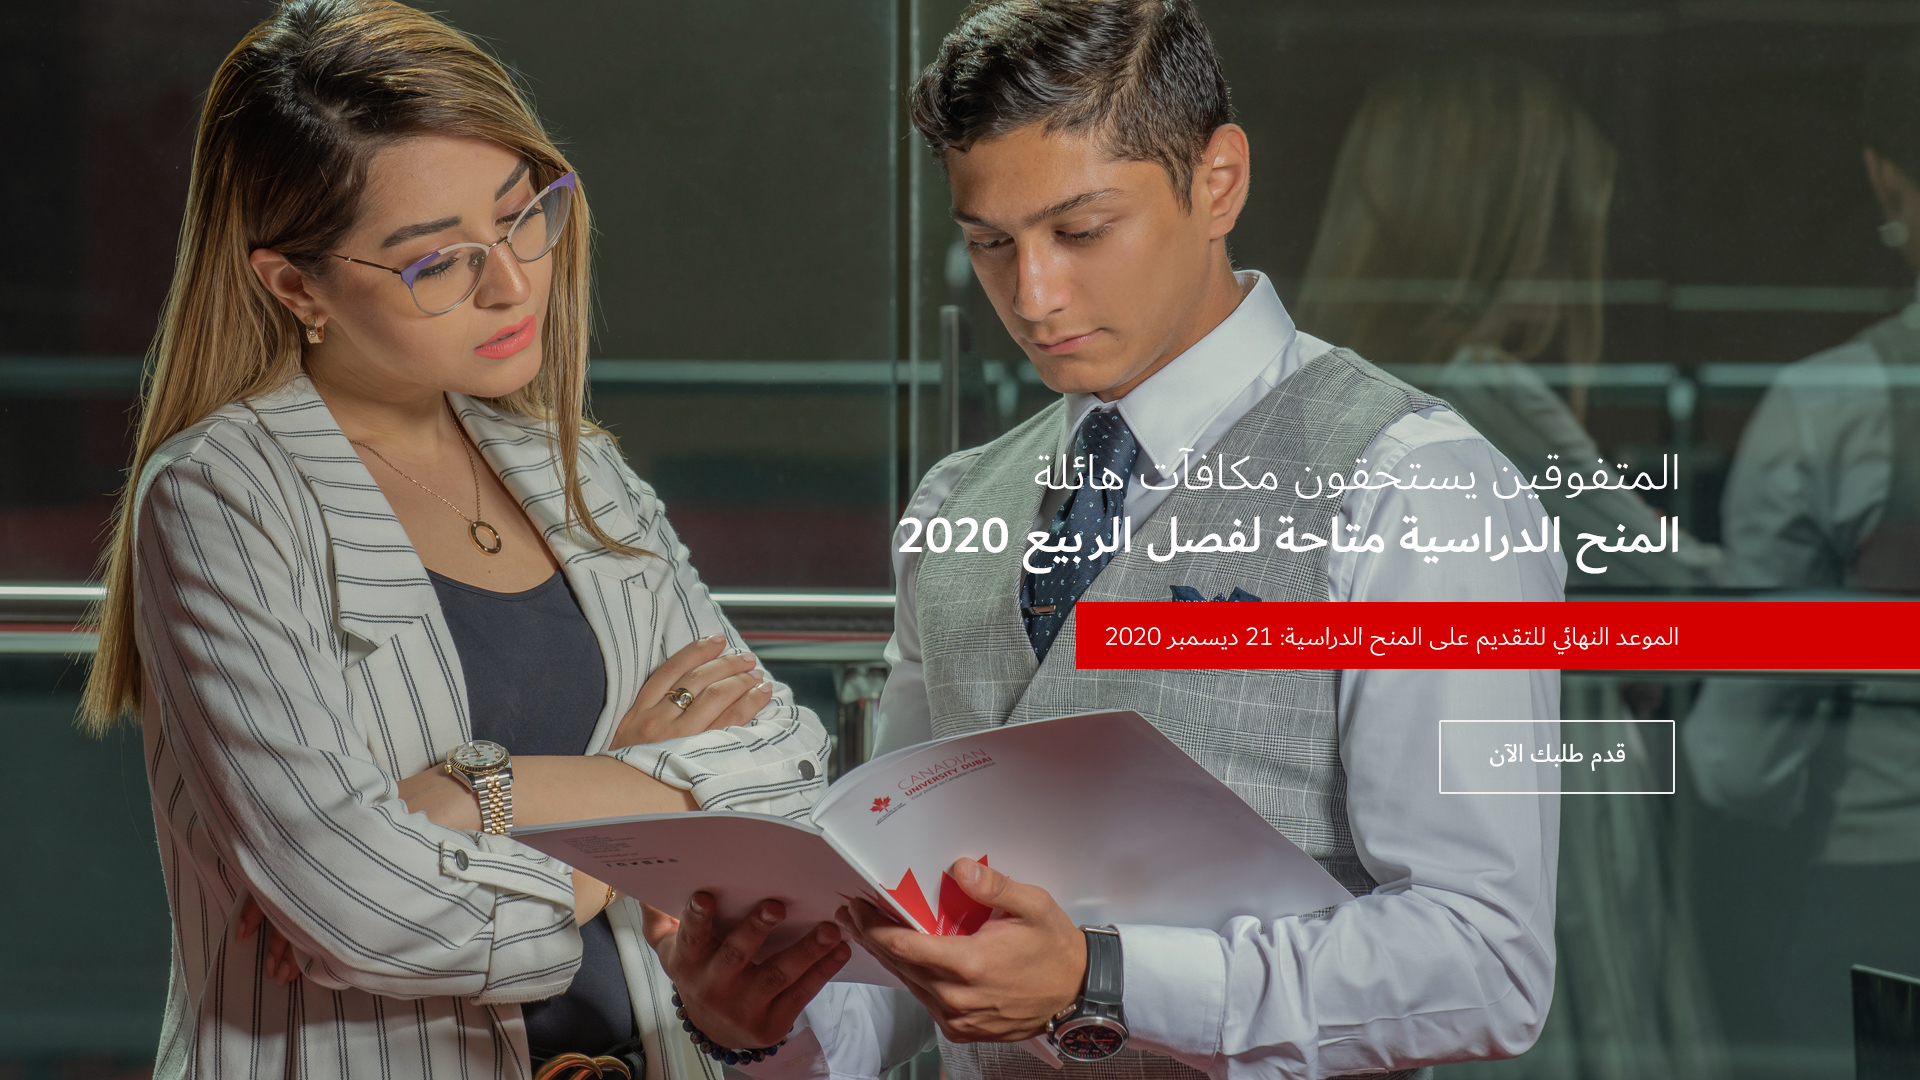 Scholarships  - Spring 2020 (Arabic)